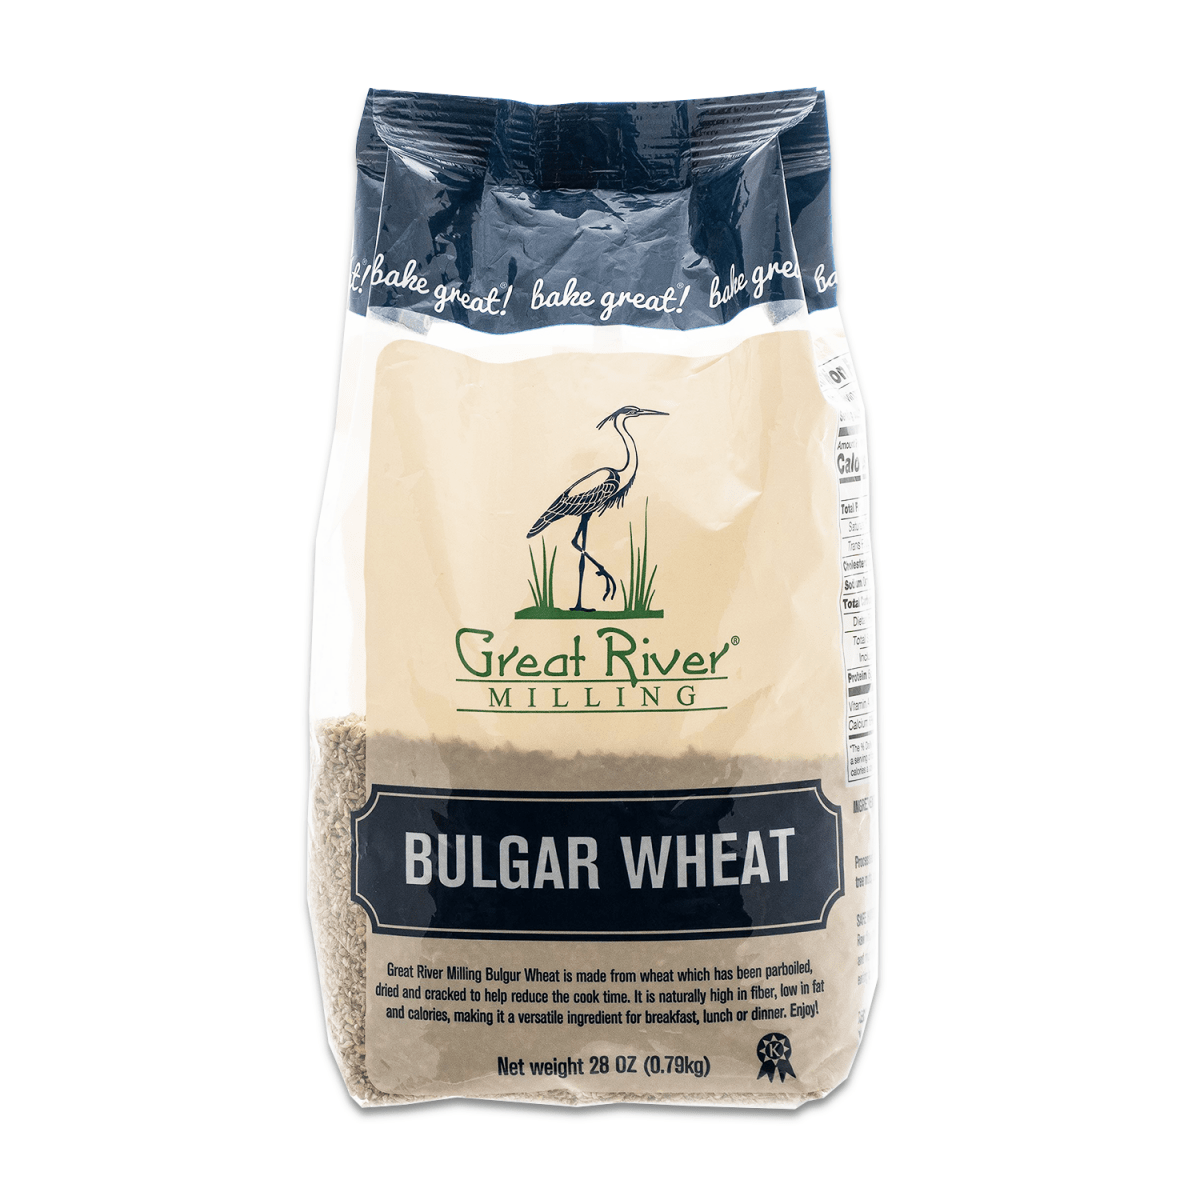 Great River Milling Bulgur Wheat